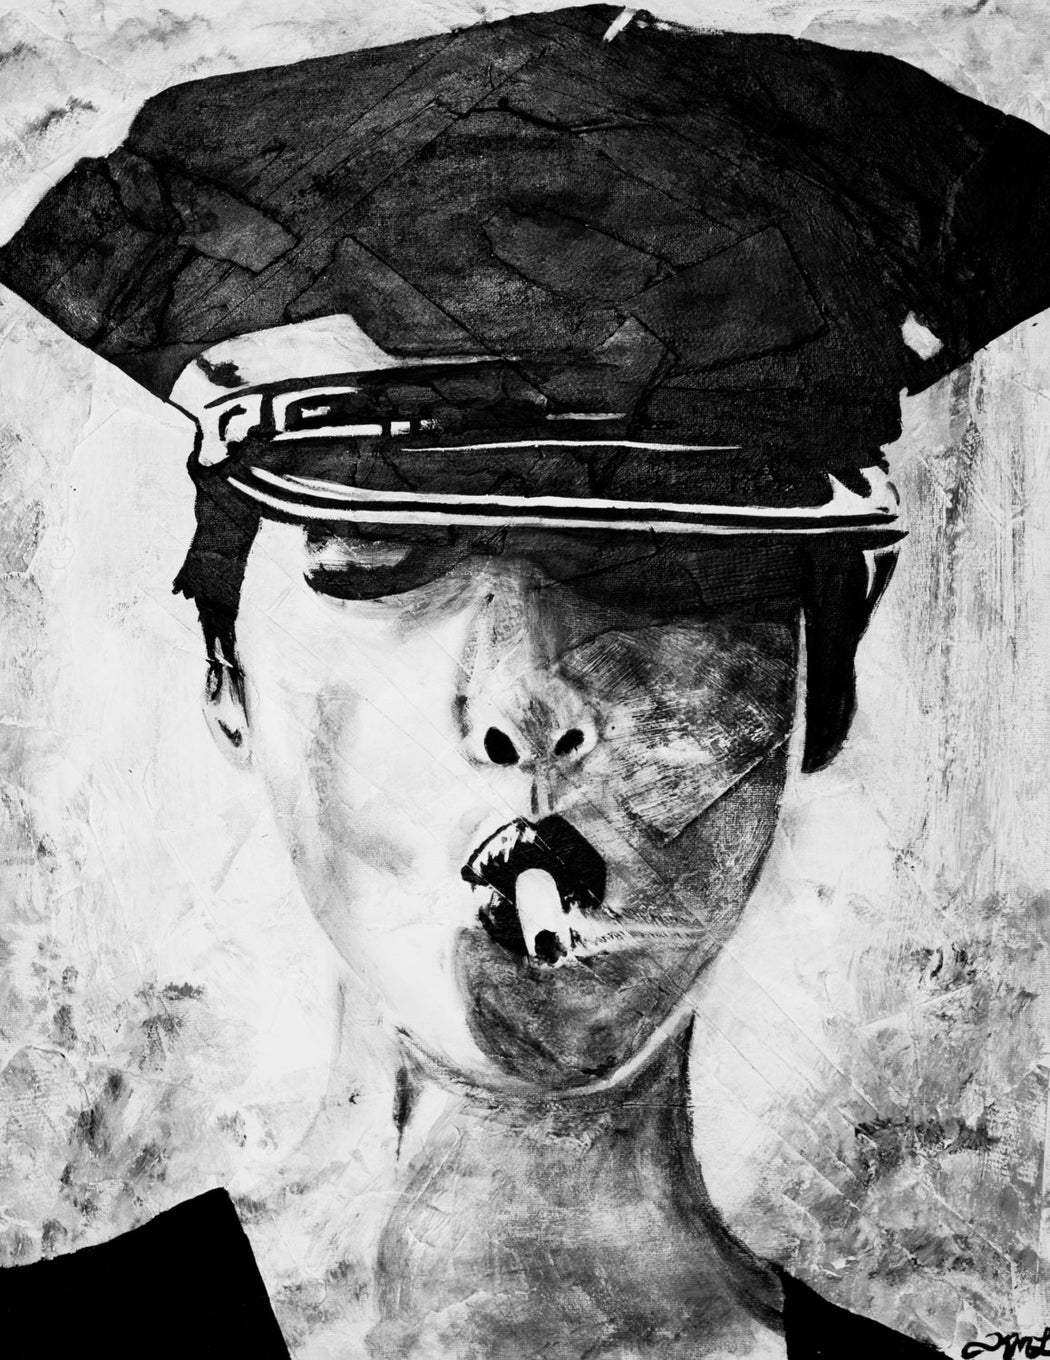 black and white police woman smoking painting by kim legler inspired by christie turlington and steven meisel portrait